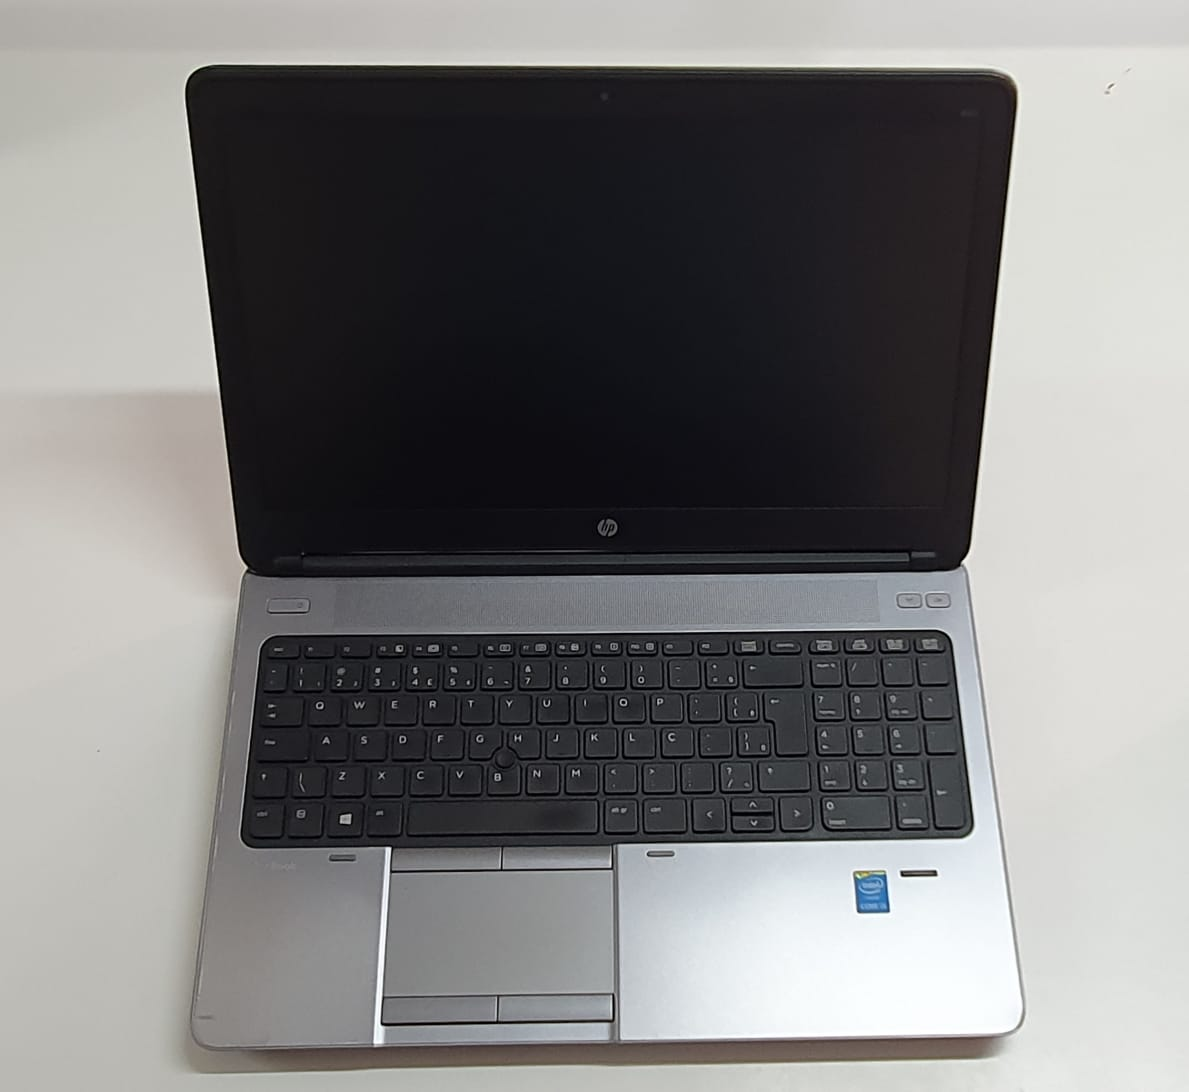 NOTEBOOK HP ELITEBOOK G1 840 14 POLEGADAS USADO